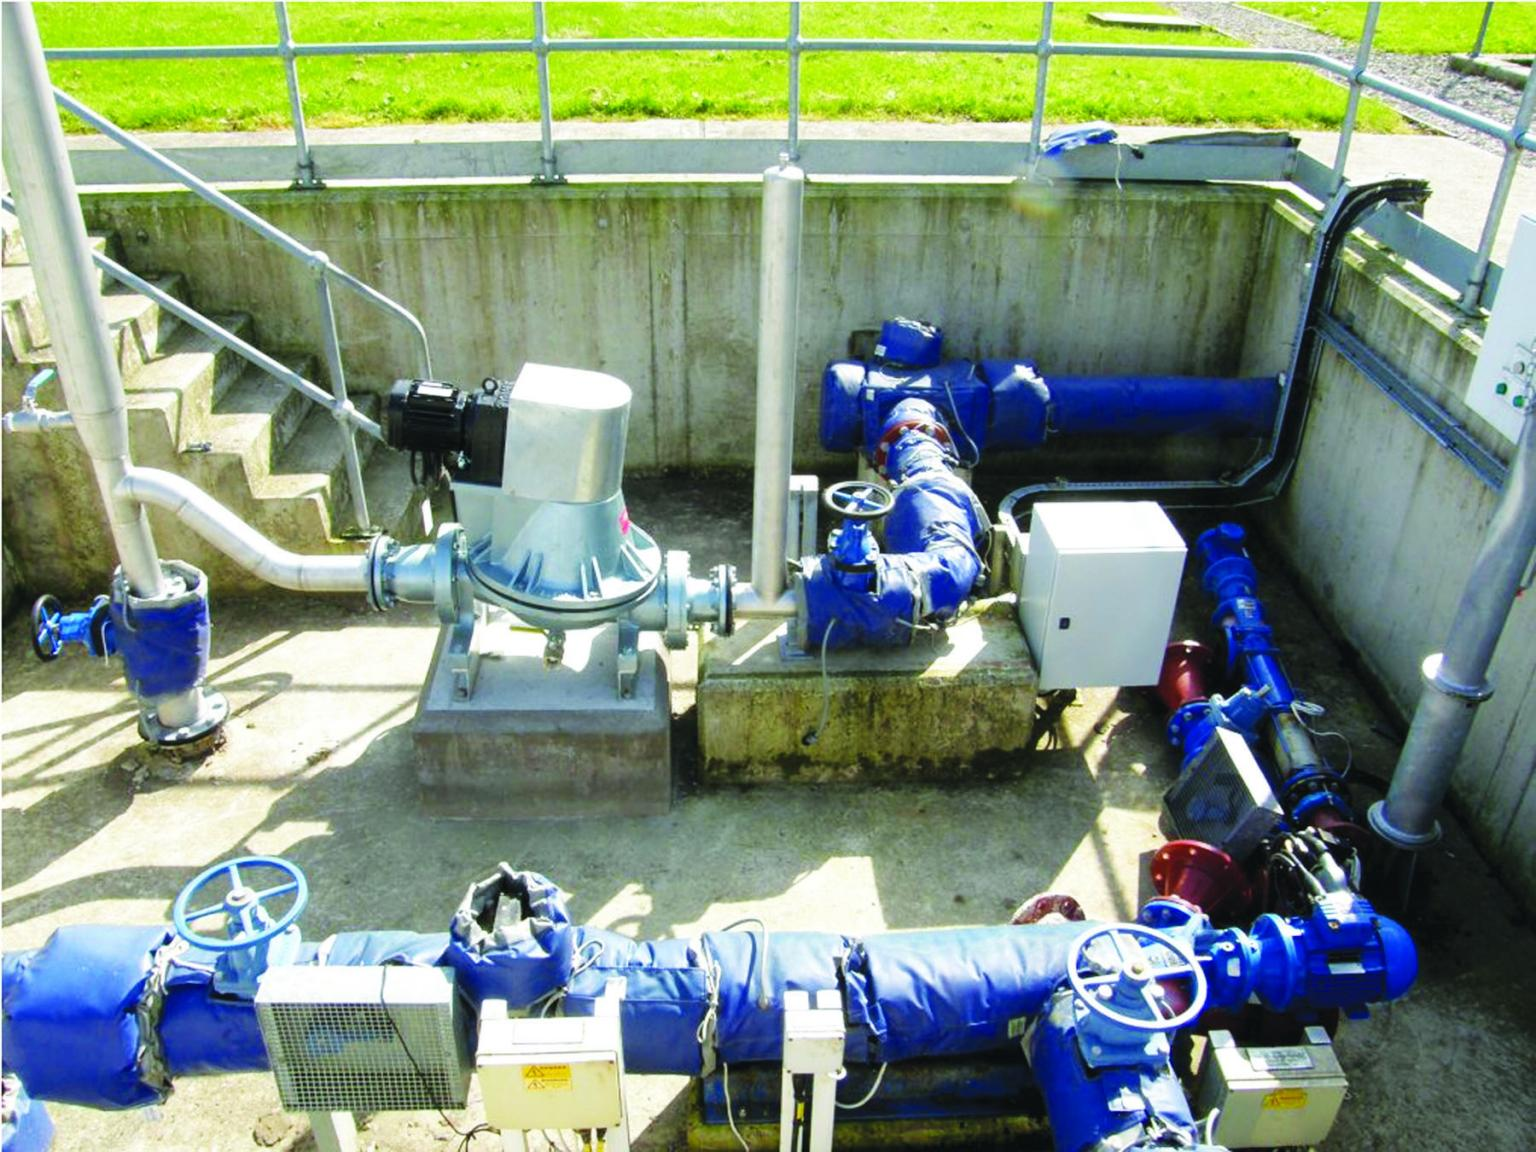 Severn Trent Water is saving £100,000 per year on energy and maintenance costs following the installation of reactive pump control for controlling sludge in sewage treatment plants